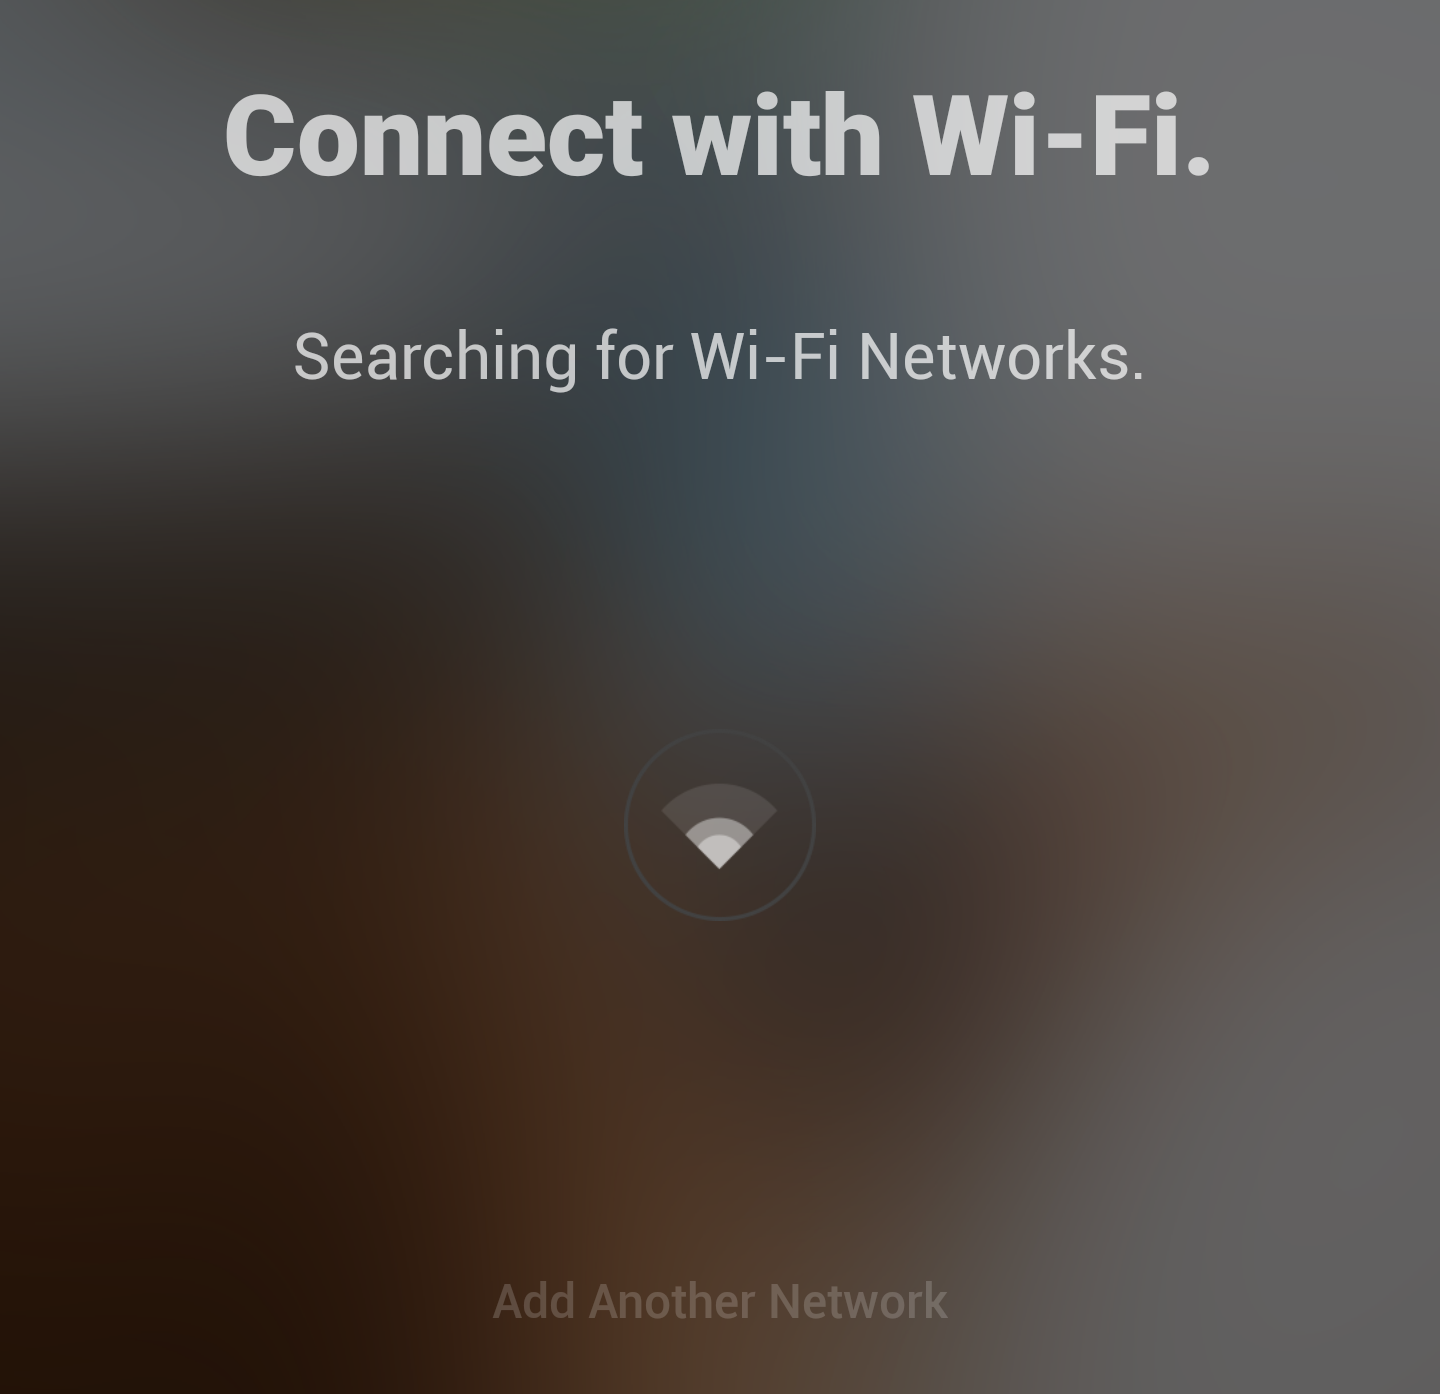 app searching for Wi-Fi networks